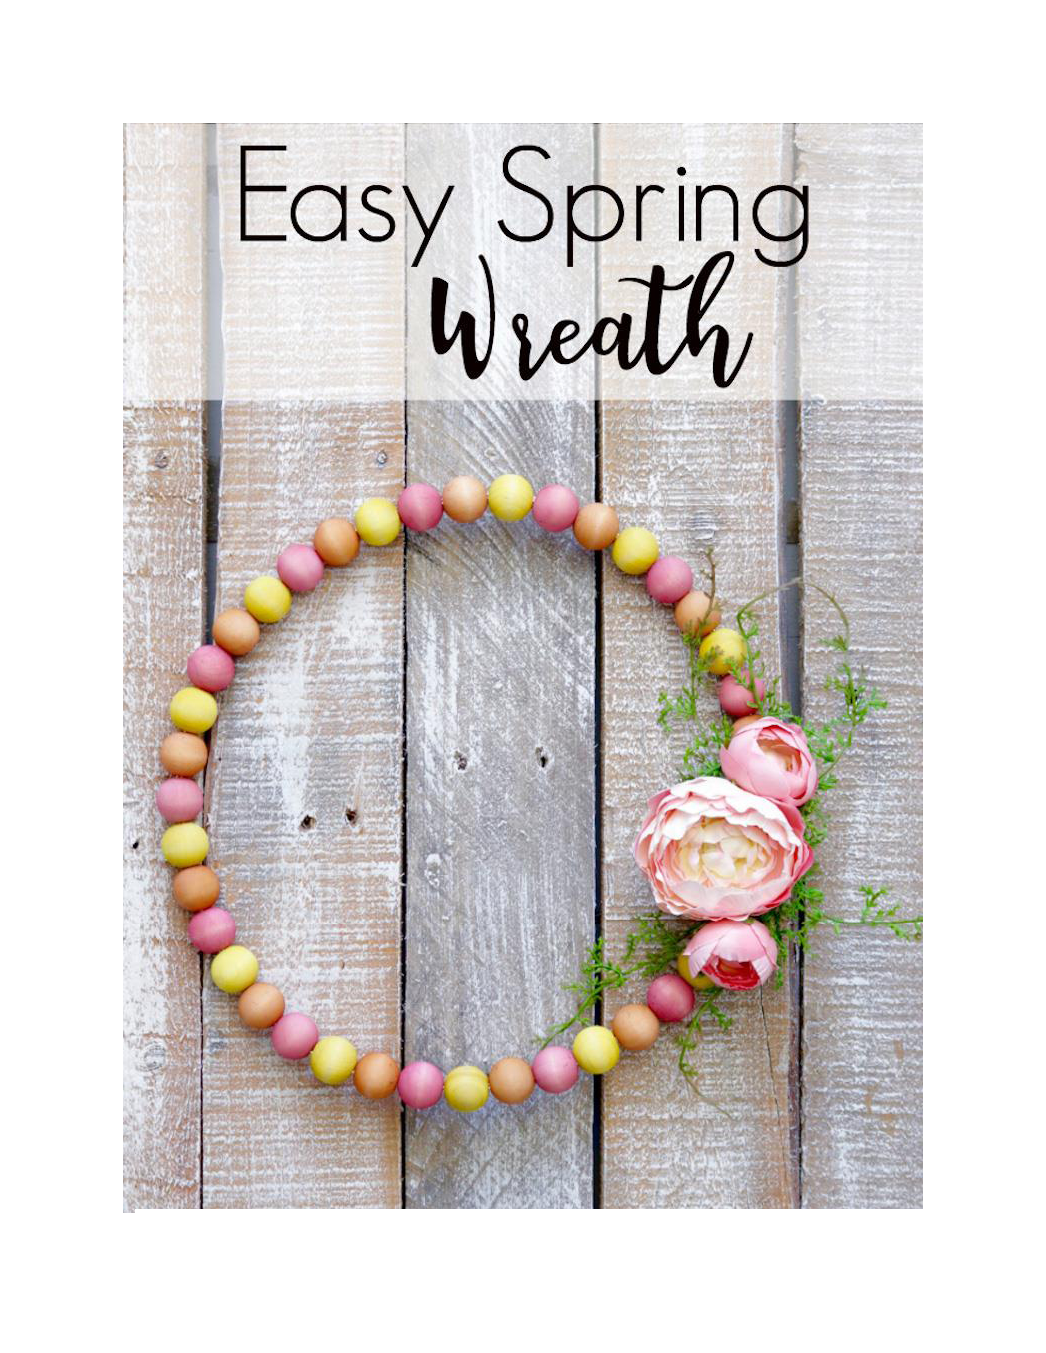 Spring Wreath Making!